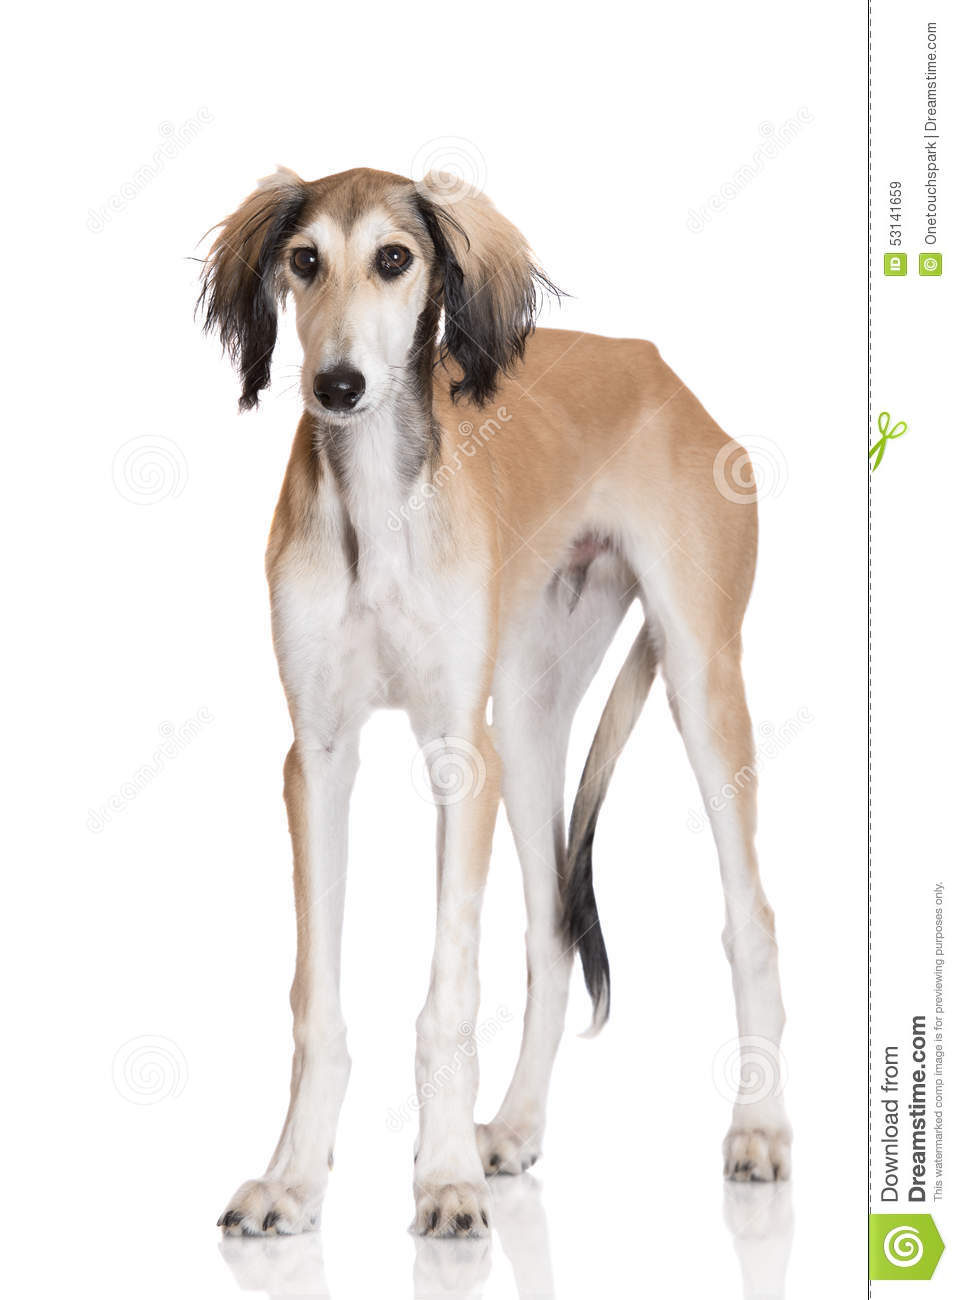 50 Adorable Saluki Dog Pictures And Images